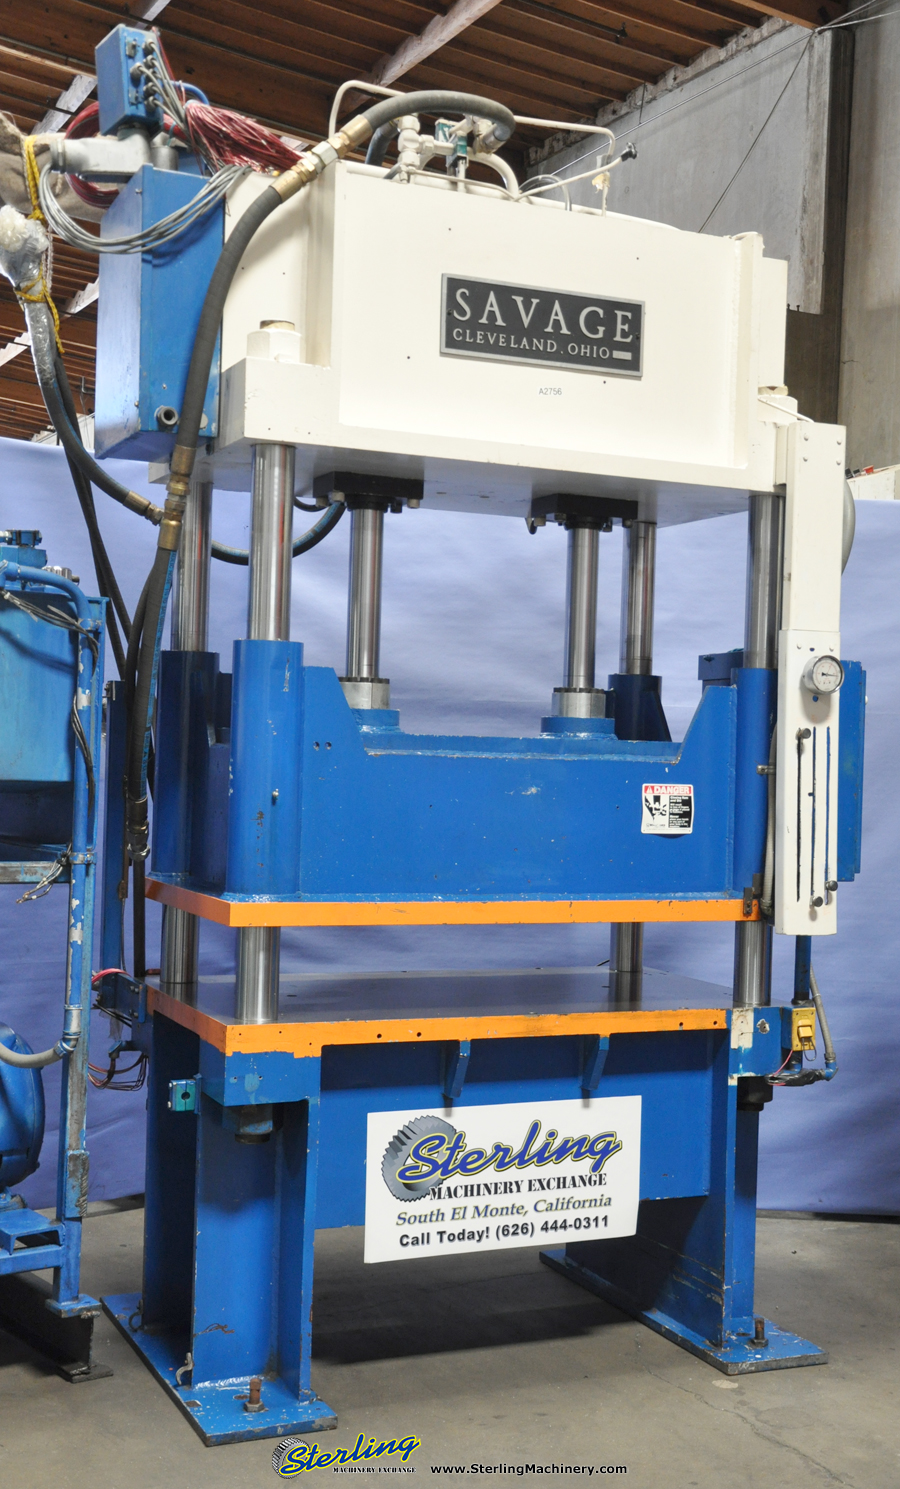 Sti For Sale >> Used Savage 4 Post Hydraulic Blanking Trim Press Sterling Machinery